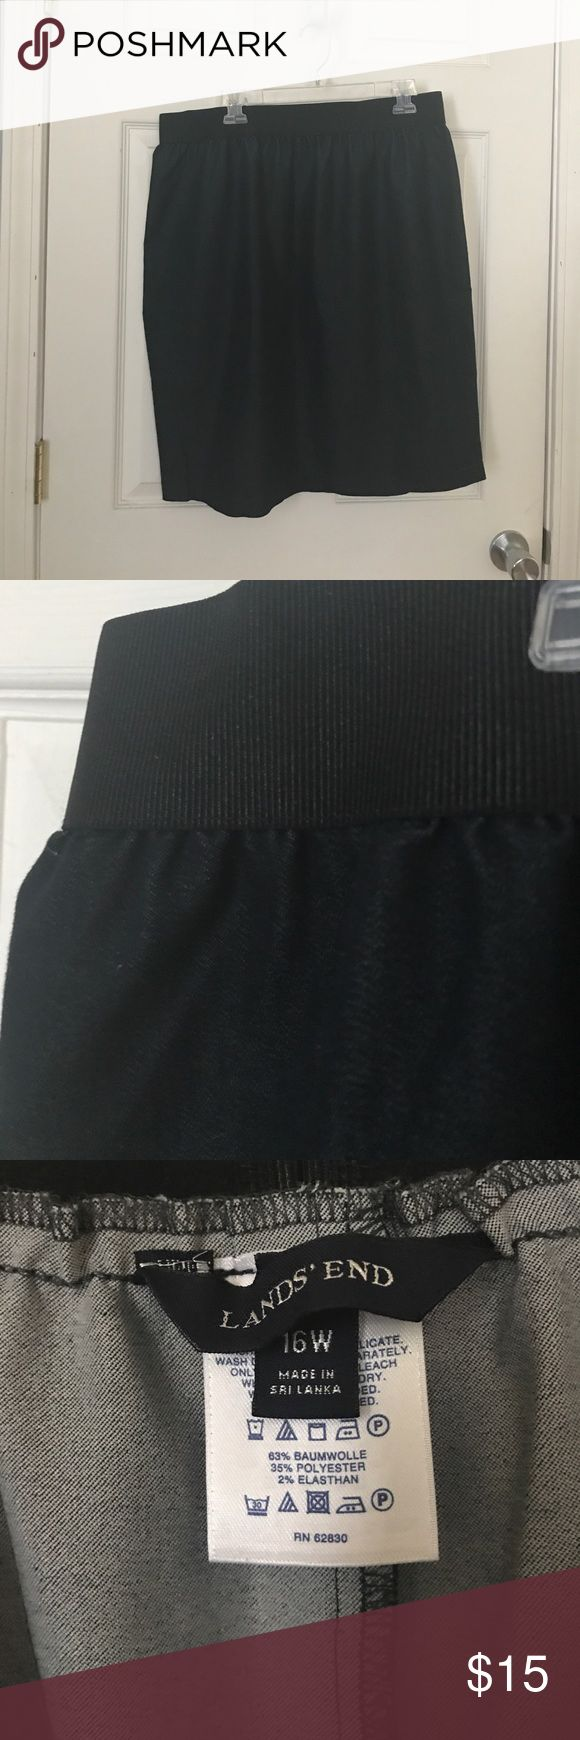 Lands End High-Waist Pencil Skirt Comfy and cute denim pencil skirt from Lands End. Bought it to wear for business professional, and don't need it now. Only worn once. In great condition. Lands' End Skirts Pencil